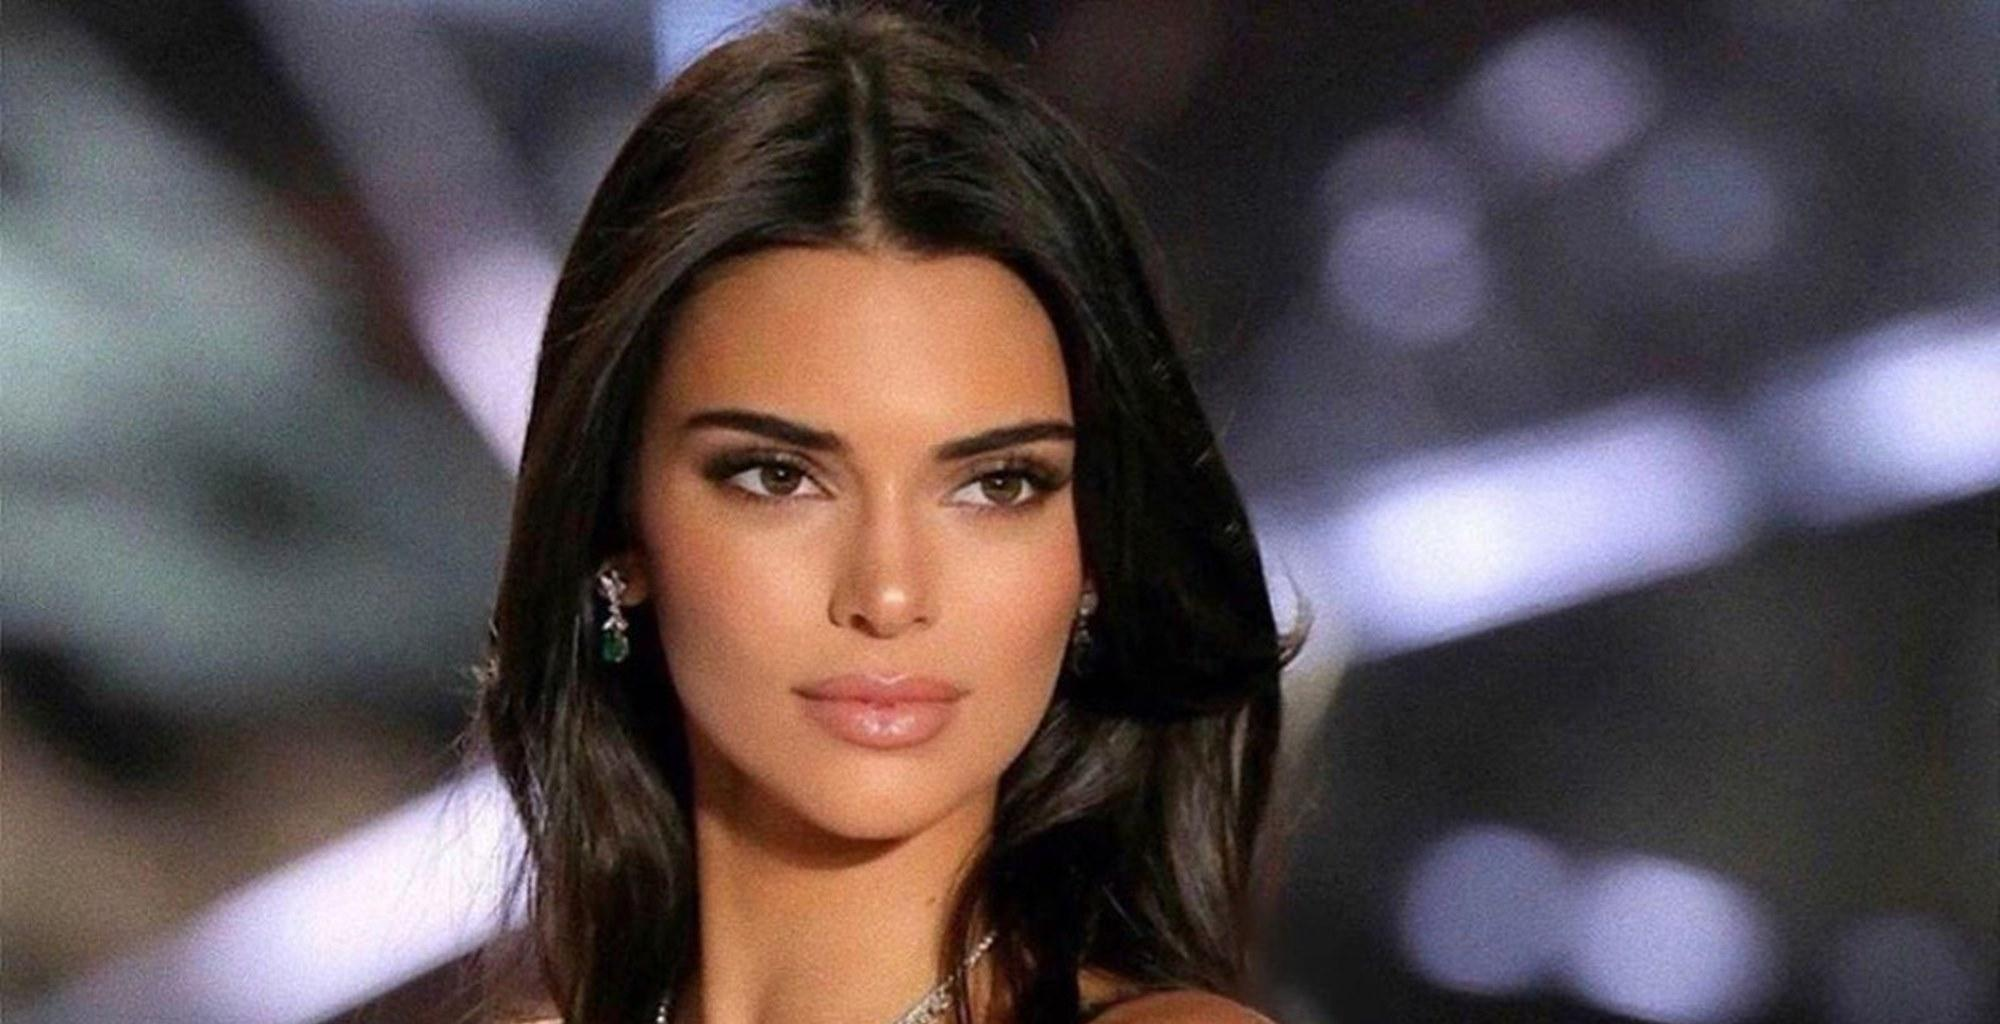 Khloé Kardashian Defends Kendall Jenner For Hooking Up With Ballers